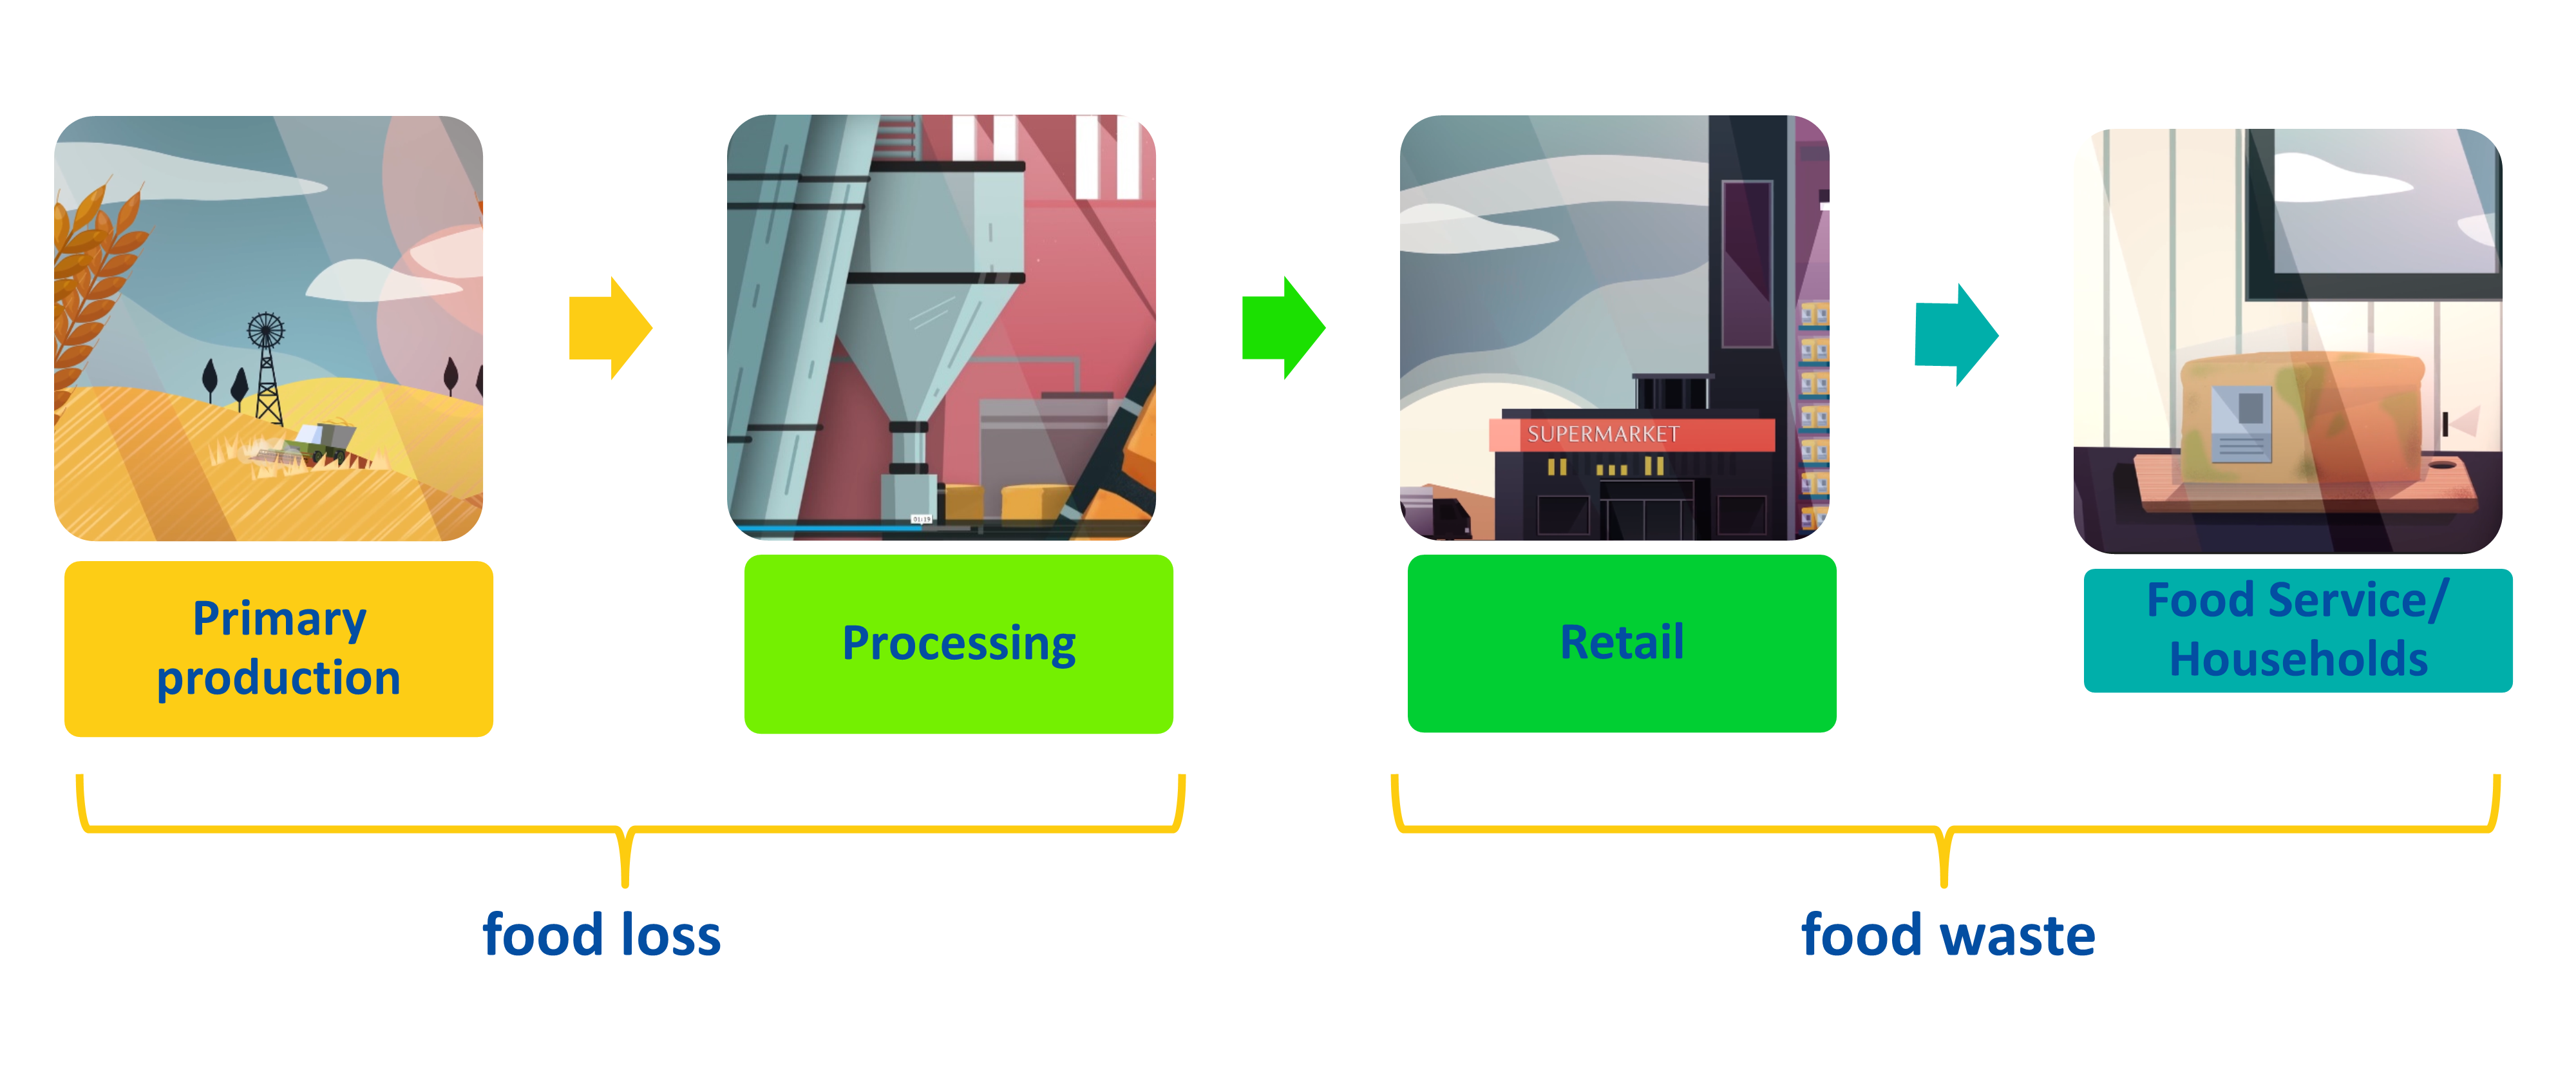 a simplified version of the food supply chain showing that food loss occurs during primary production and processing and food waste occurs at retail and food service/household levels